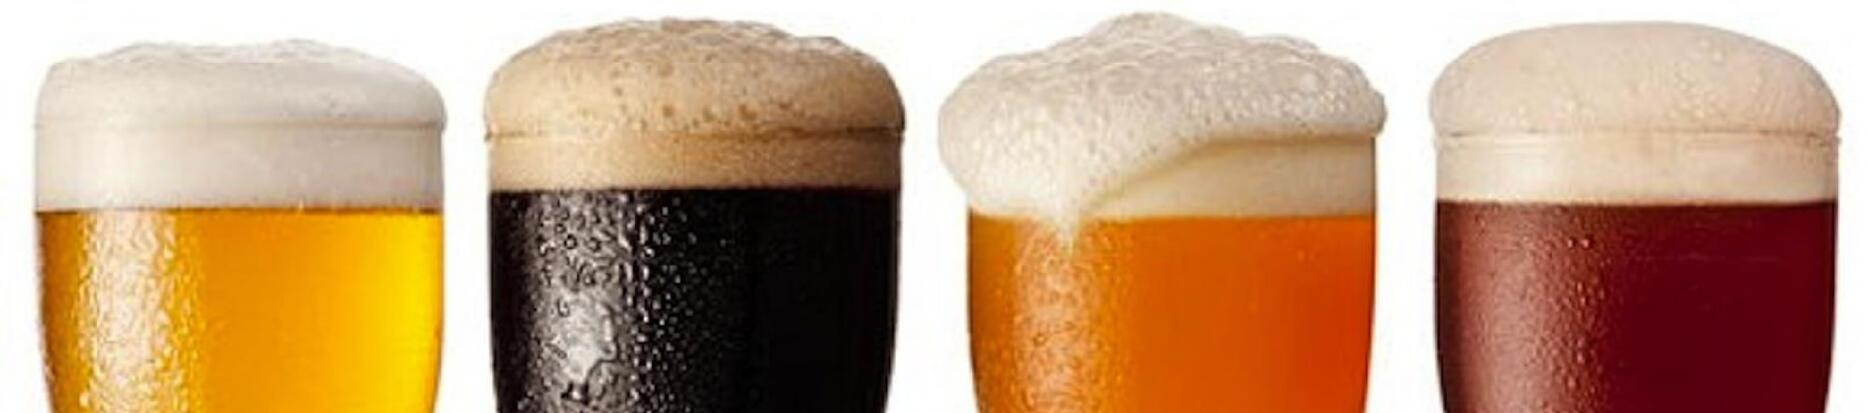 Offre Beer Attraction 2015 Fiera di Rimini